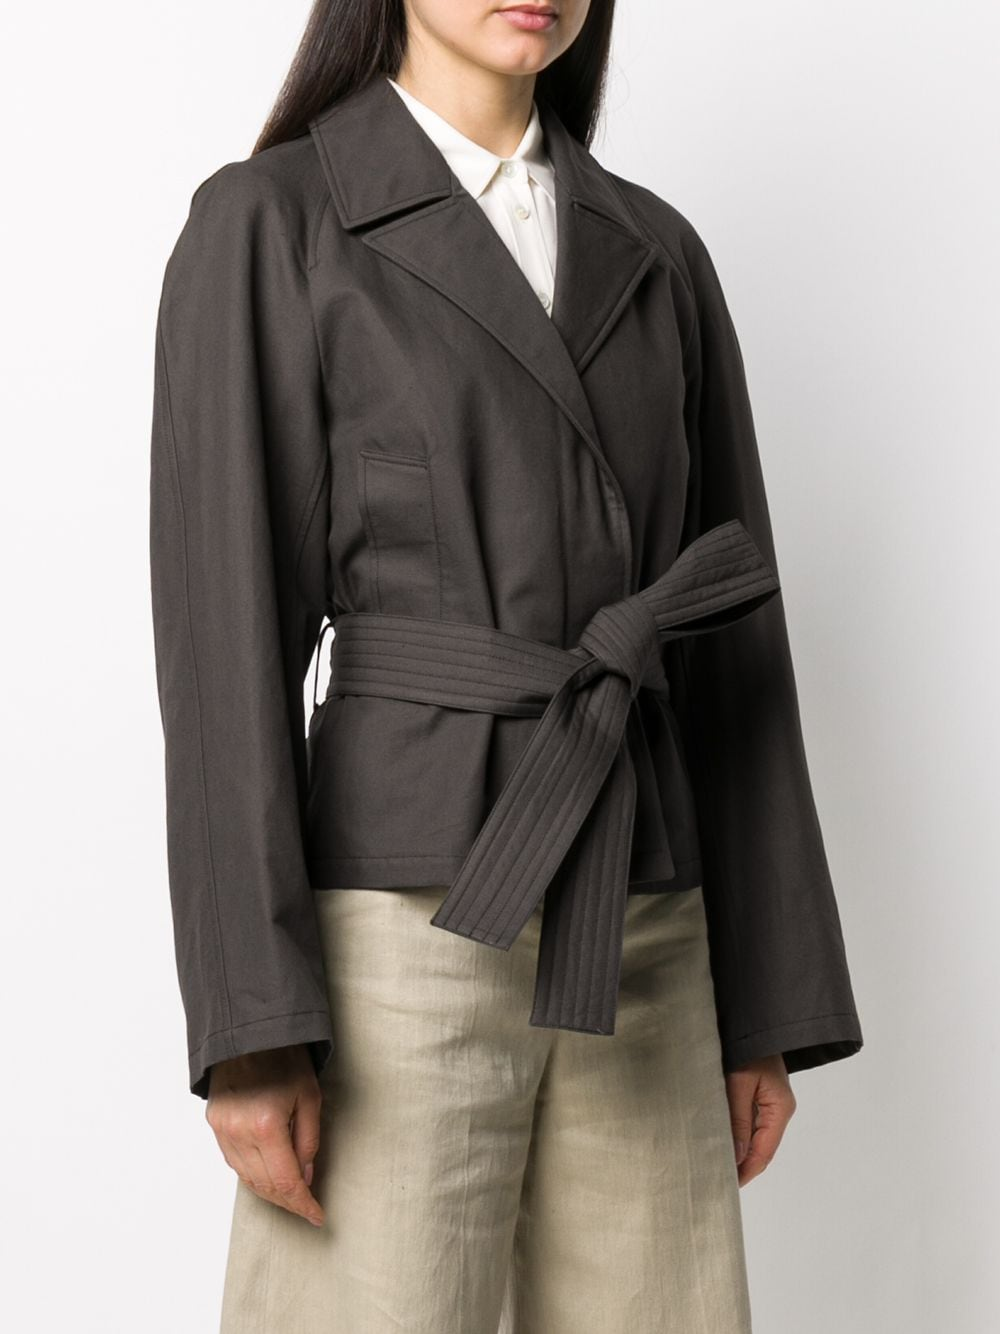 Giacca in cotone LEMAIRE | Blouson | W 201 OW267 LF439993